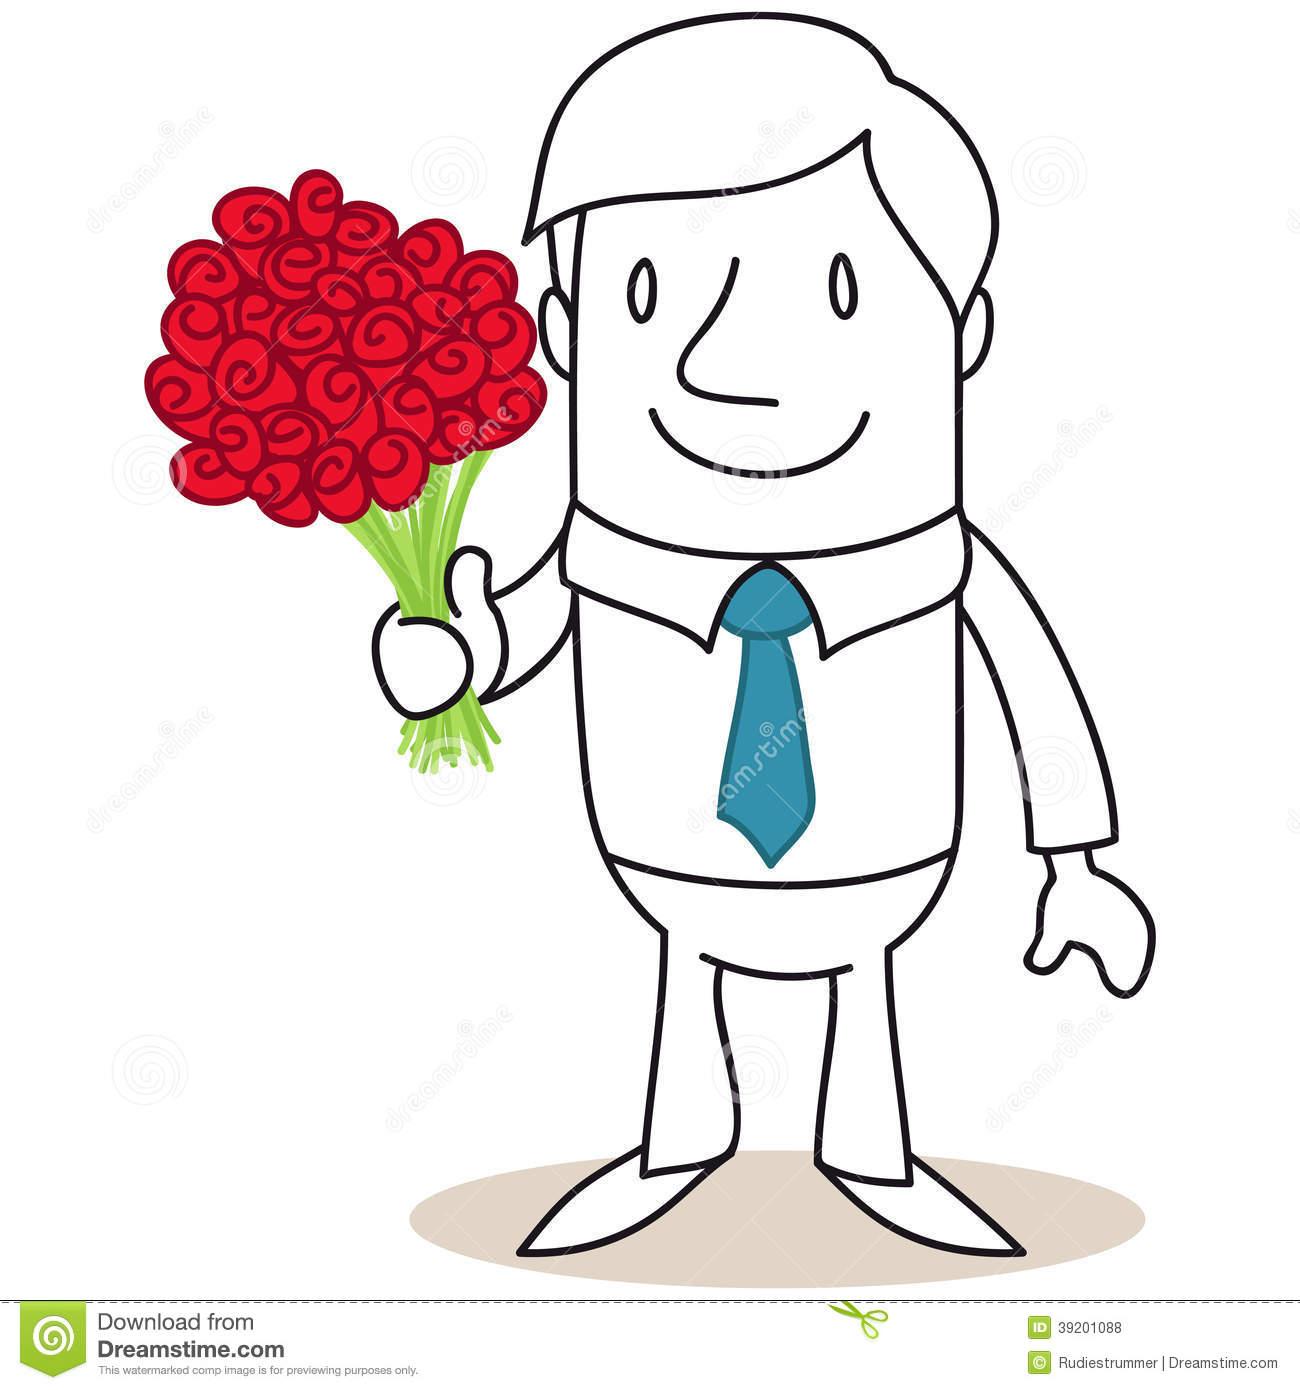 Smiling cartoon man holding bouquet of red roses stock vector smiling cartoon man holding bouquet of red roses izmirmasajfo